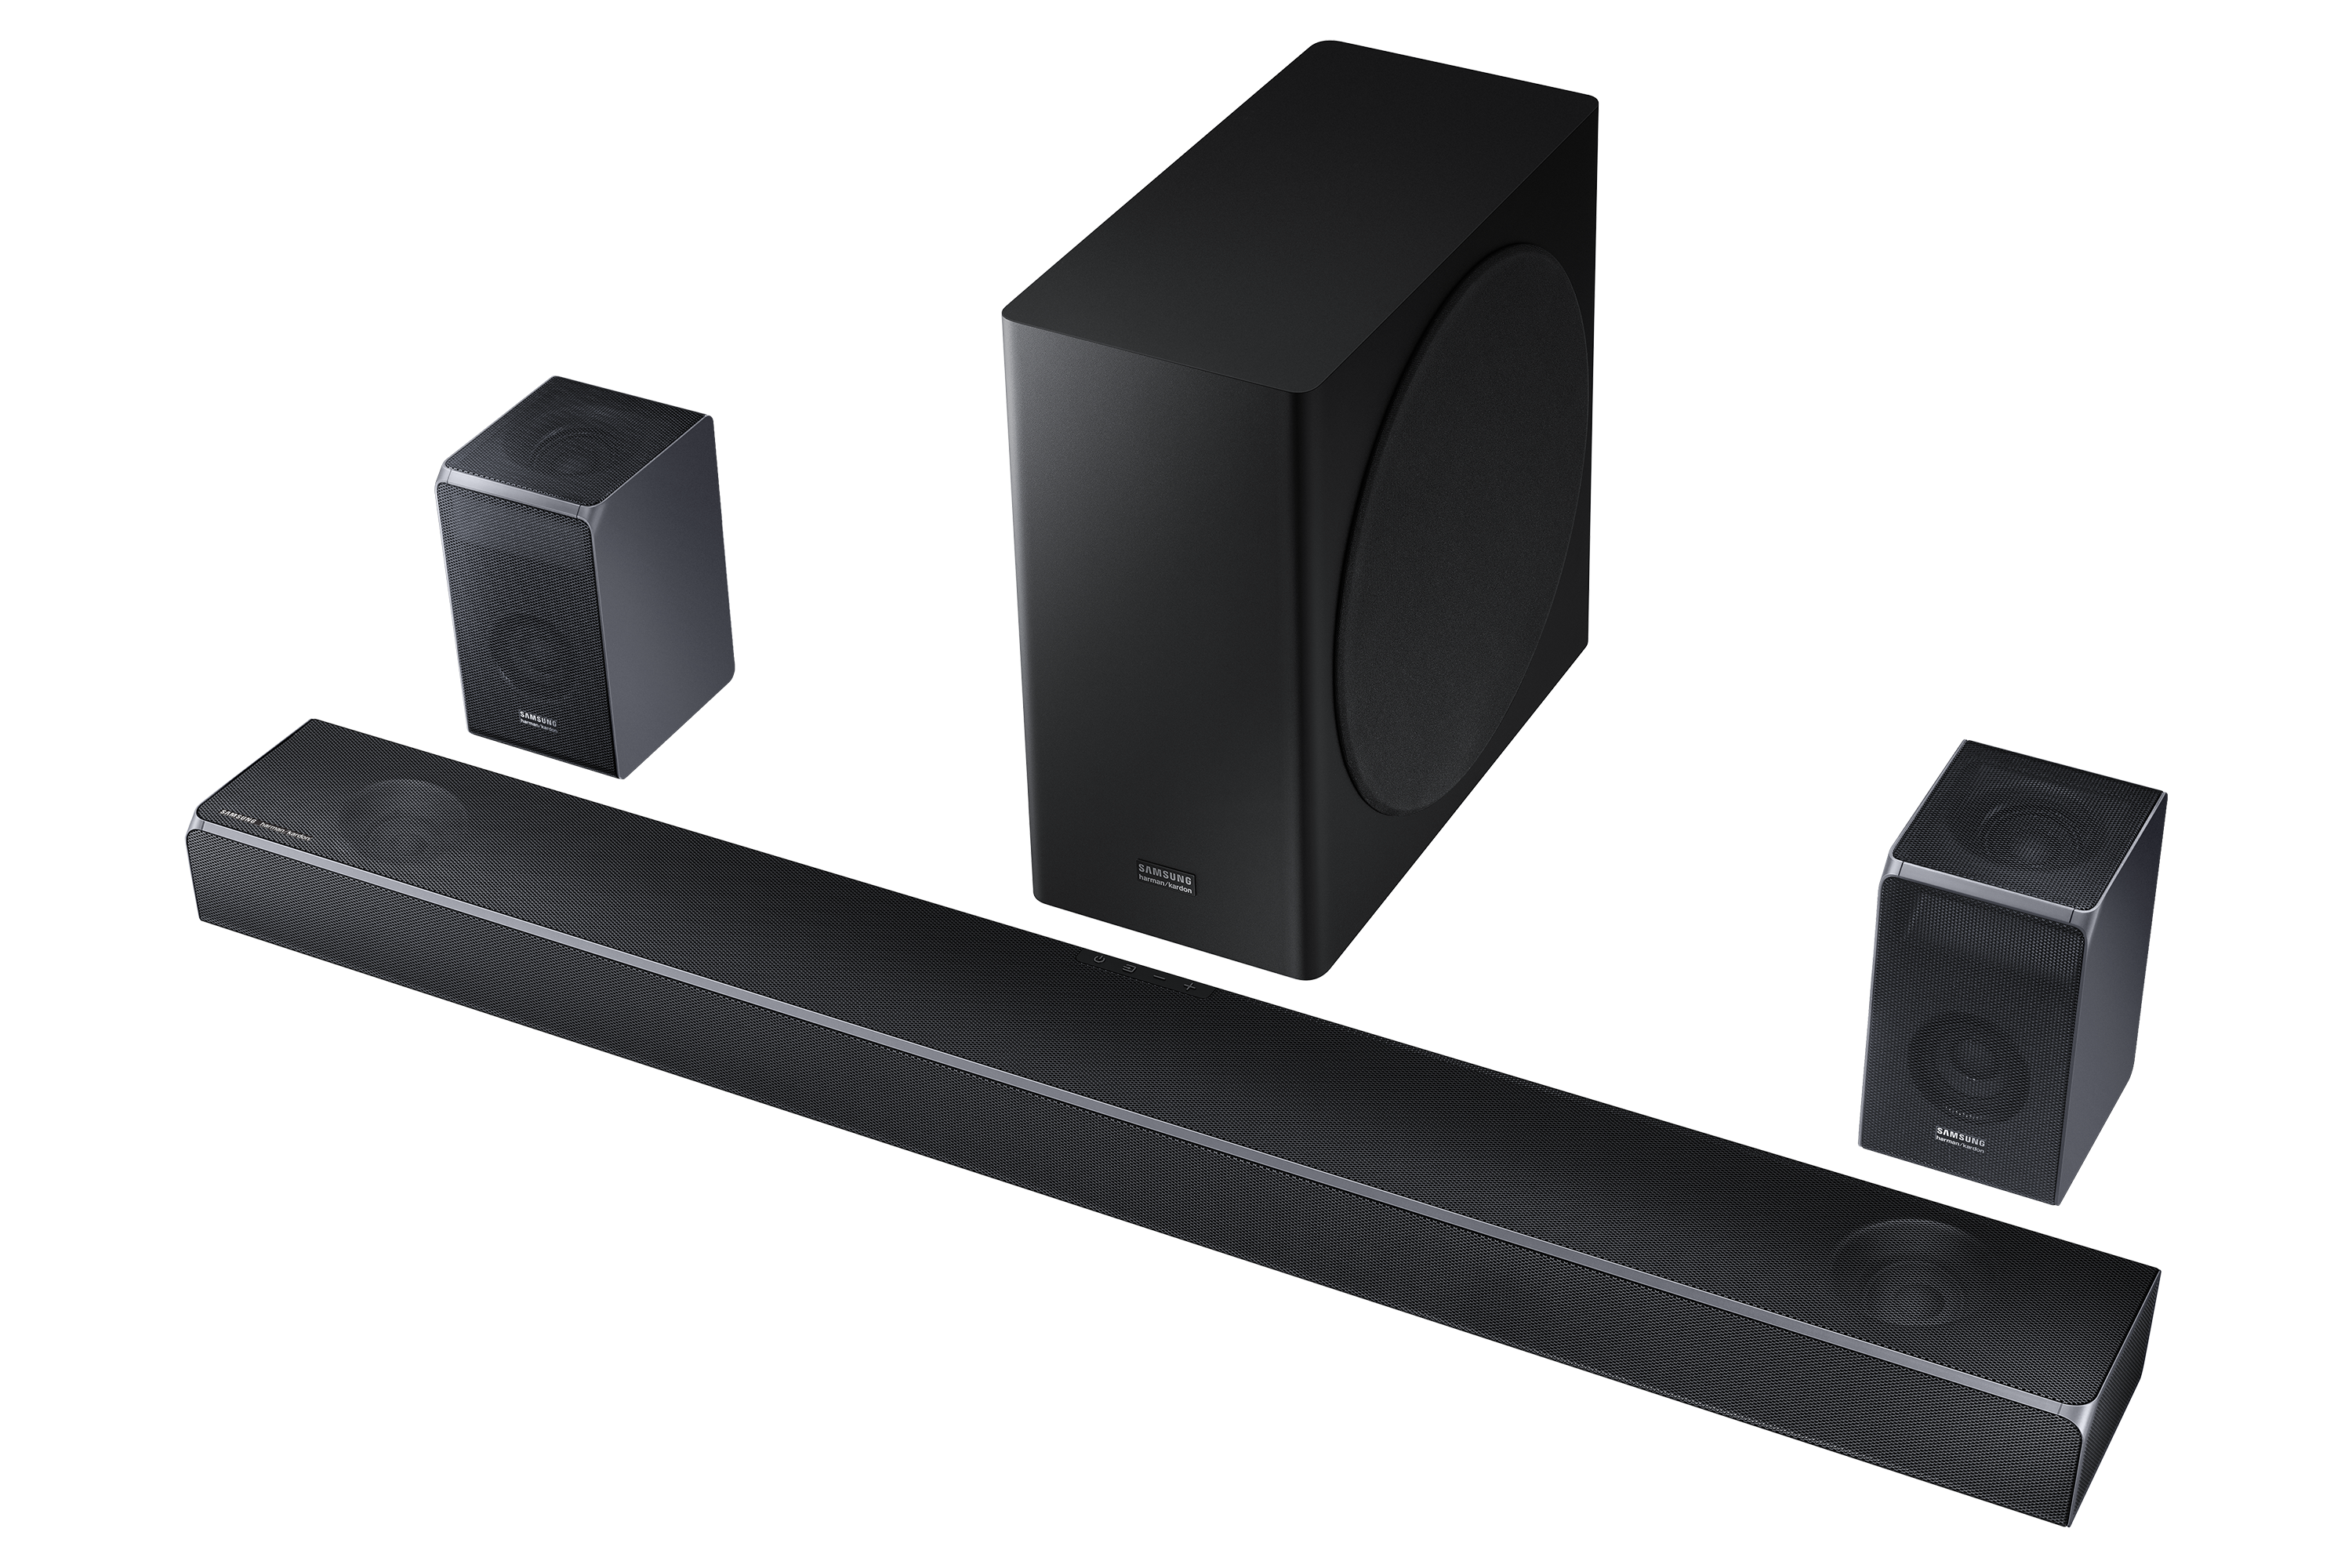 Samsung Launches 2019 Q Series Soundbar Line Featuring New Sound